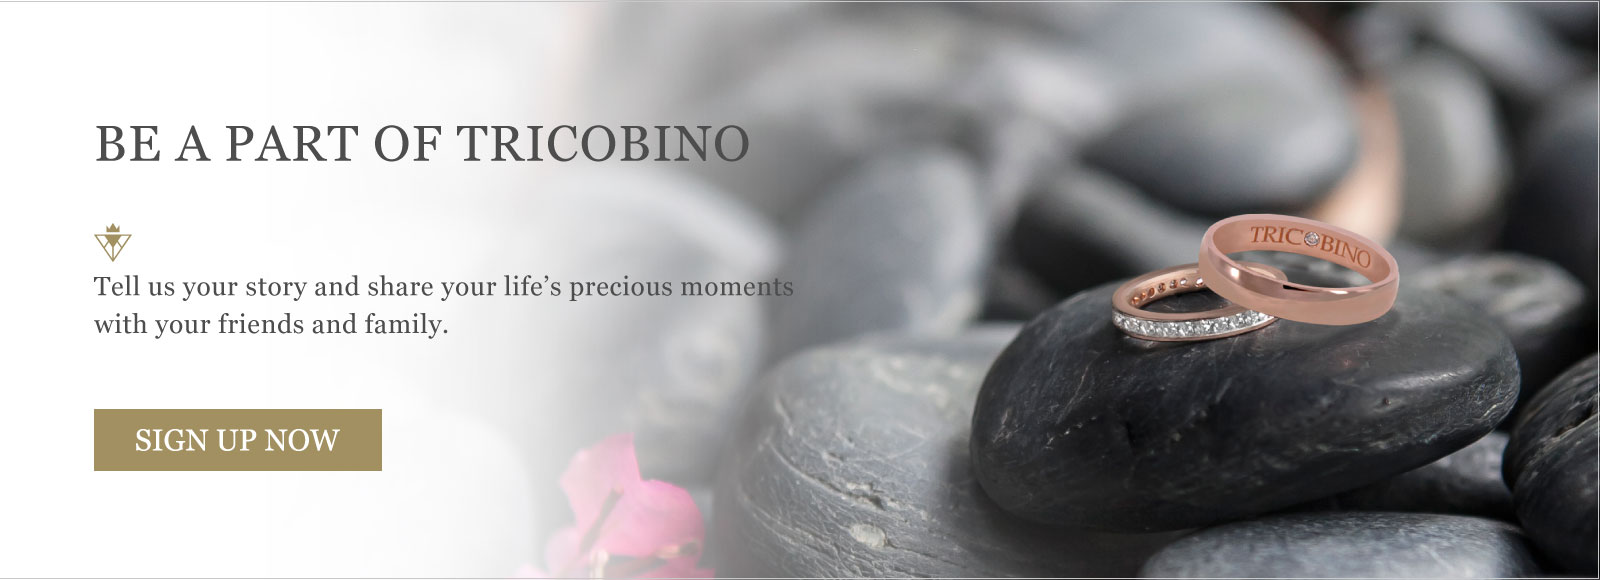 Tricobino - Subscription